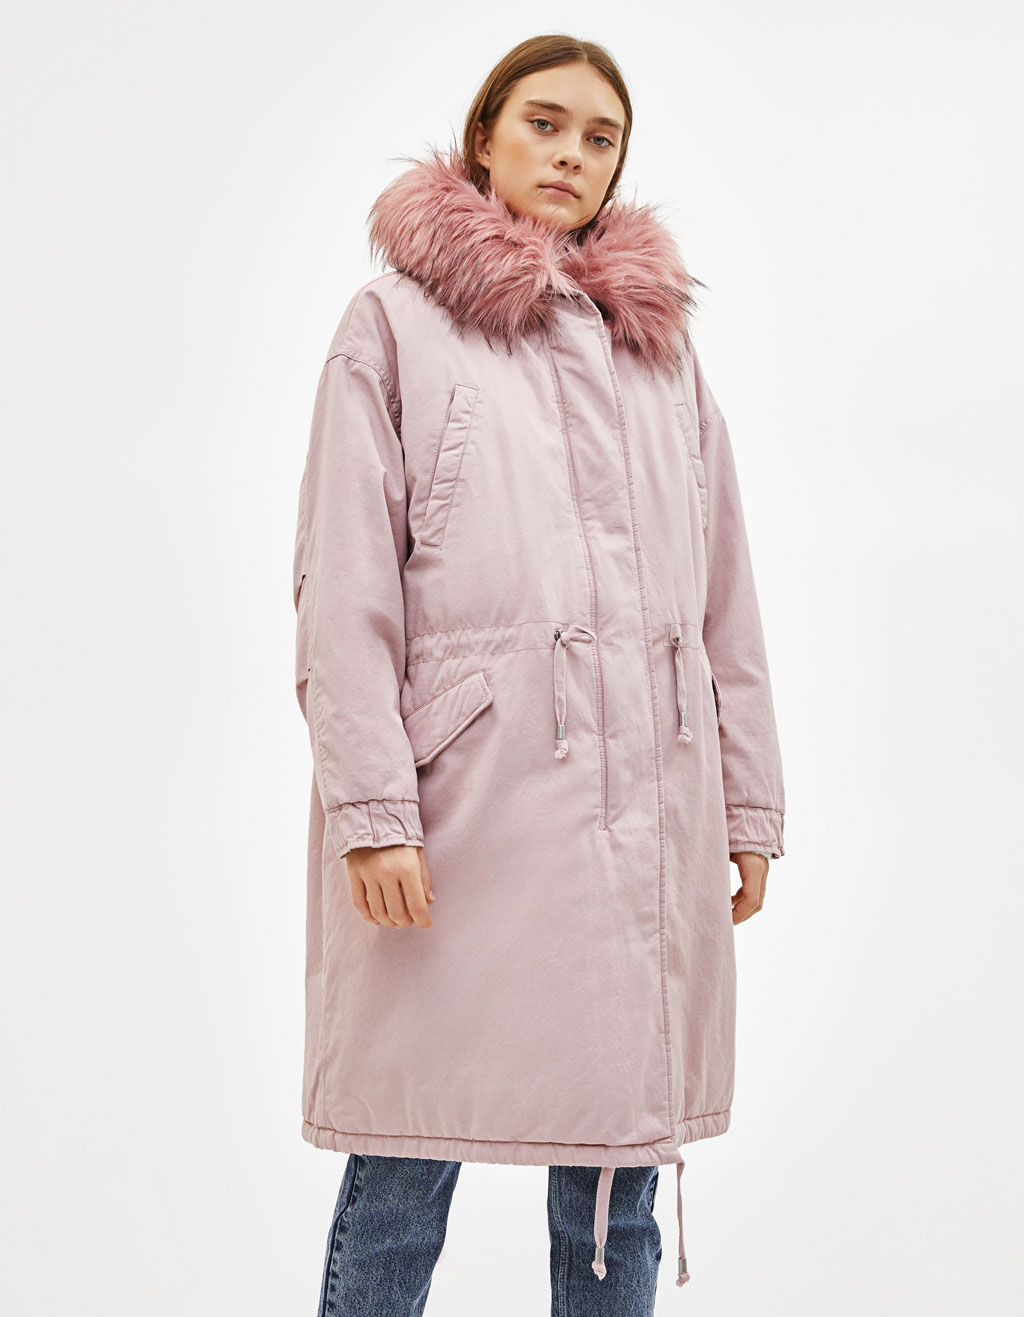 53b6b9d520d3 Parka coat with fuzzy hood trim - Asia Exclusive - Bershka Mainland China    中国大陆